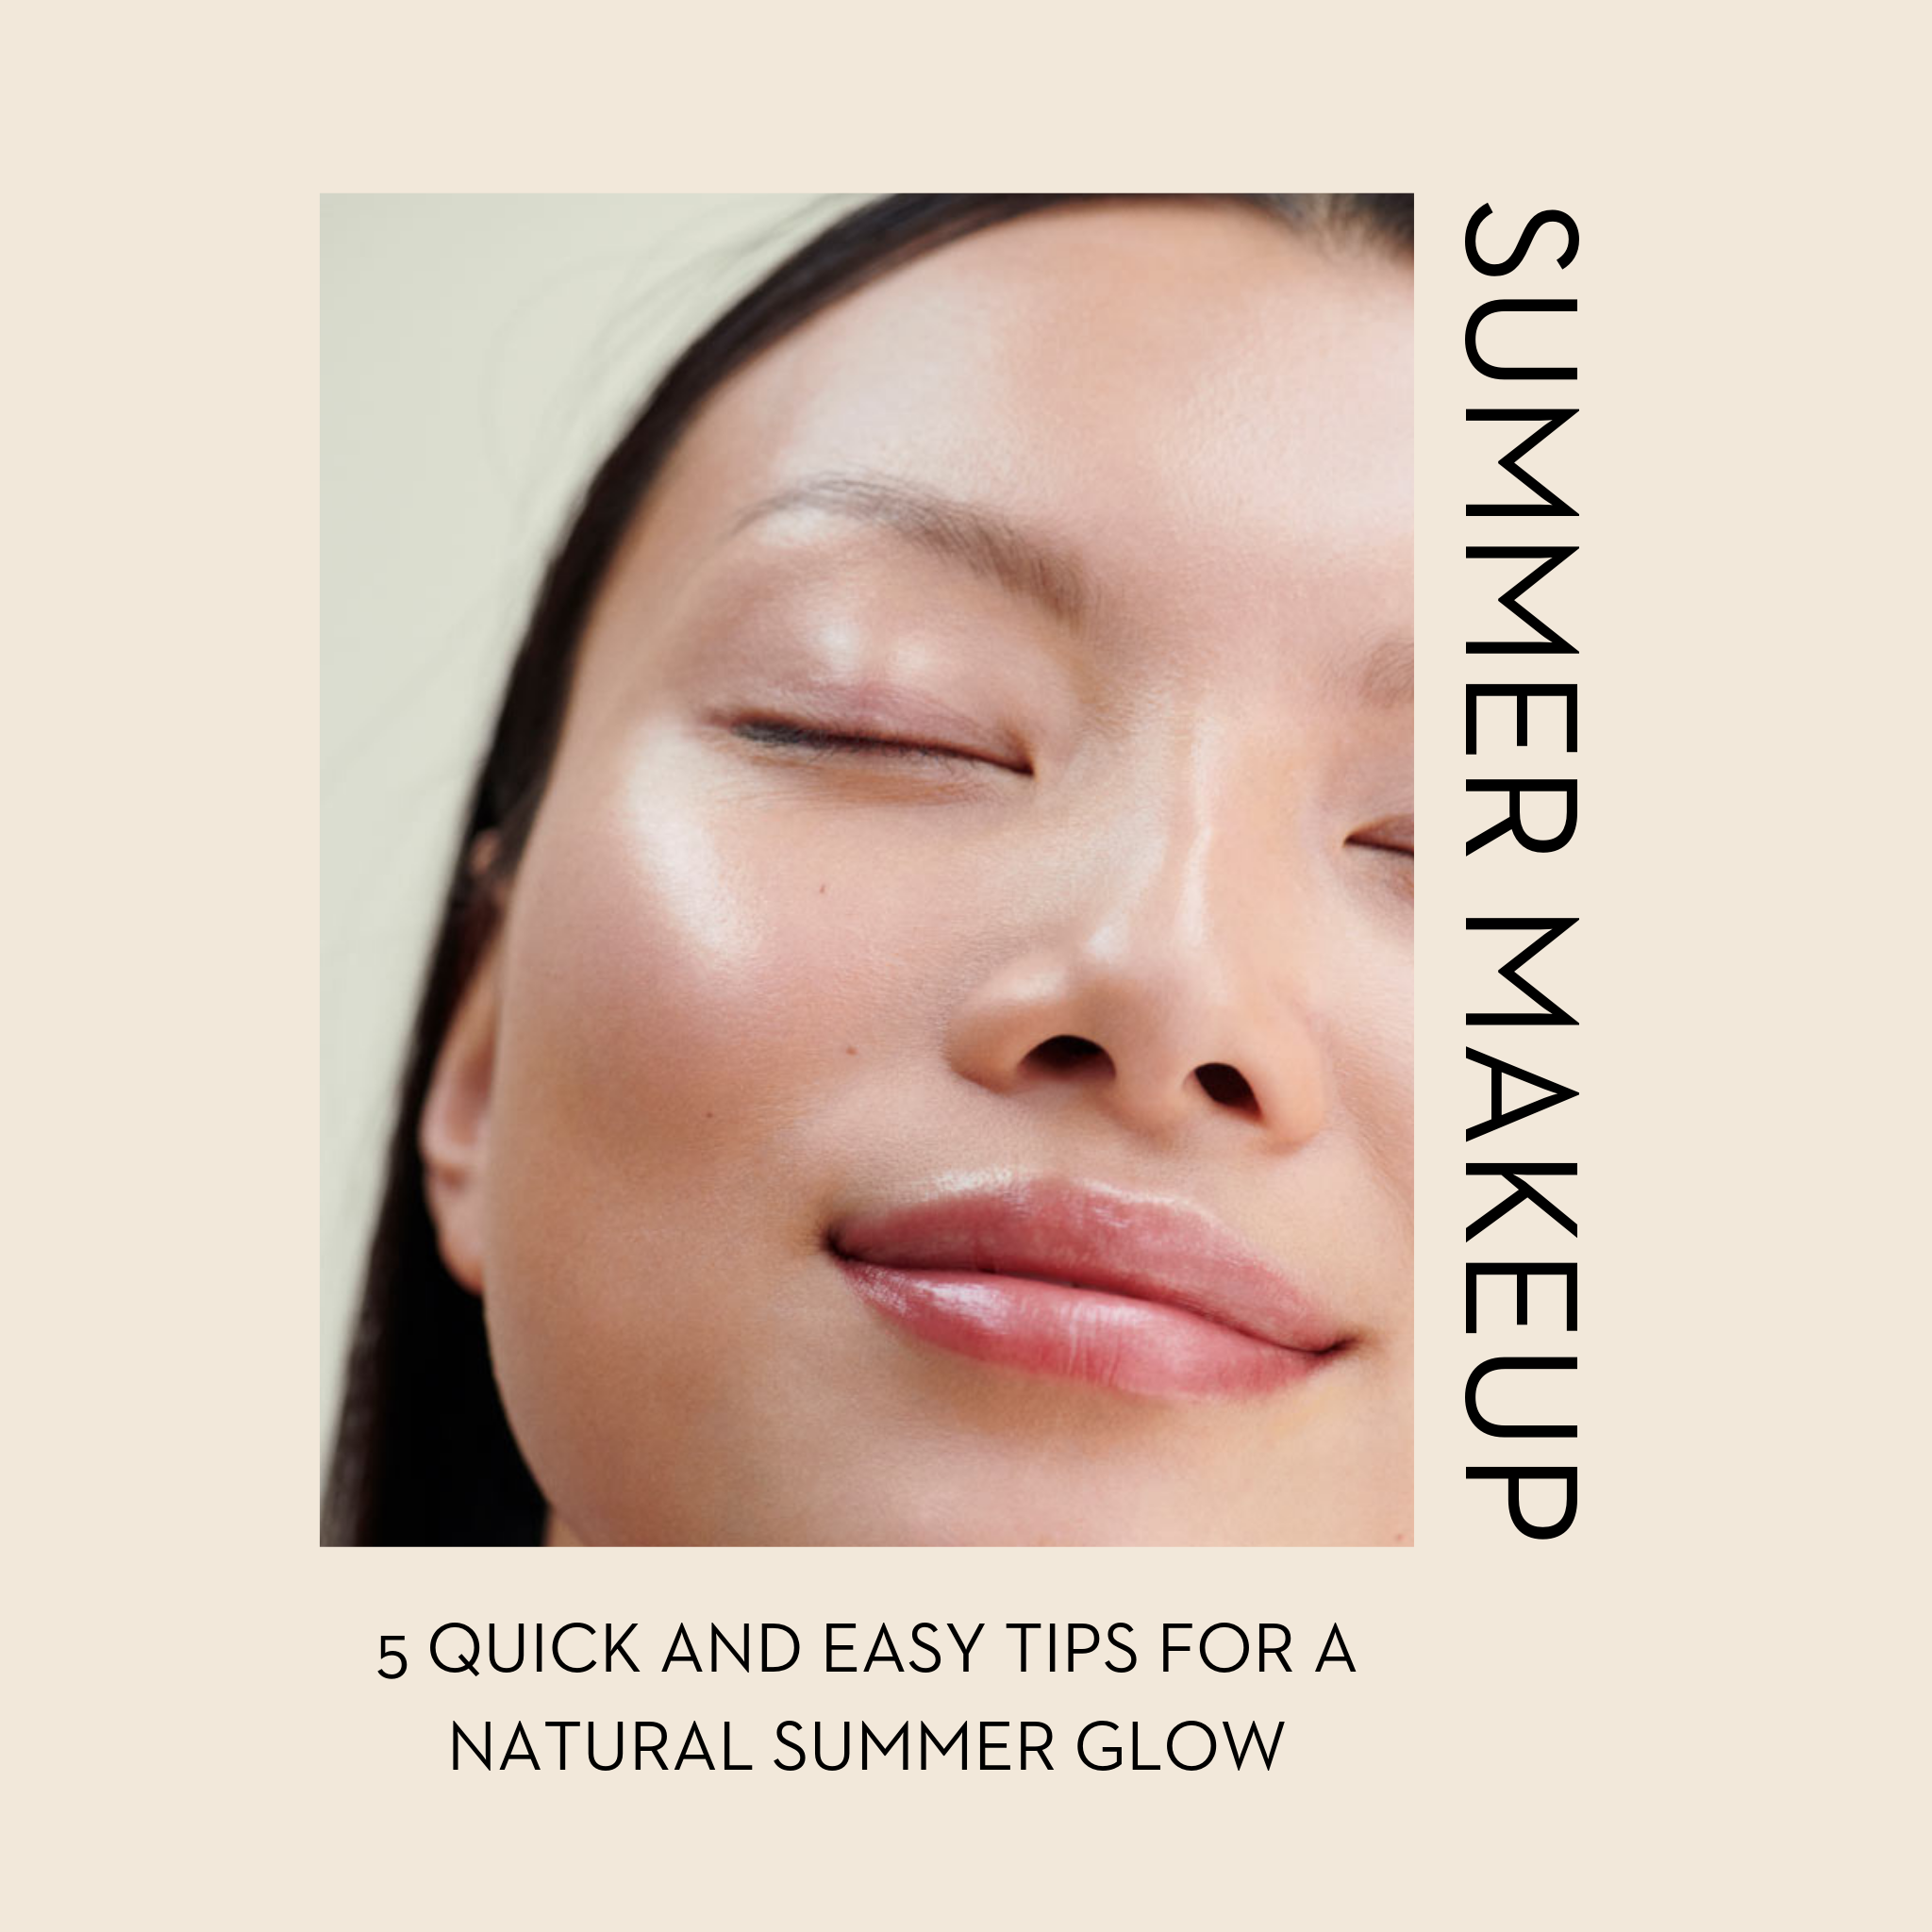 Summer Makeup - 5 Quick and easy tips for a natural summer glow